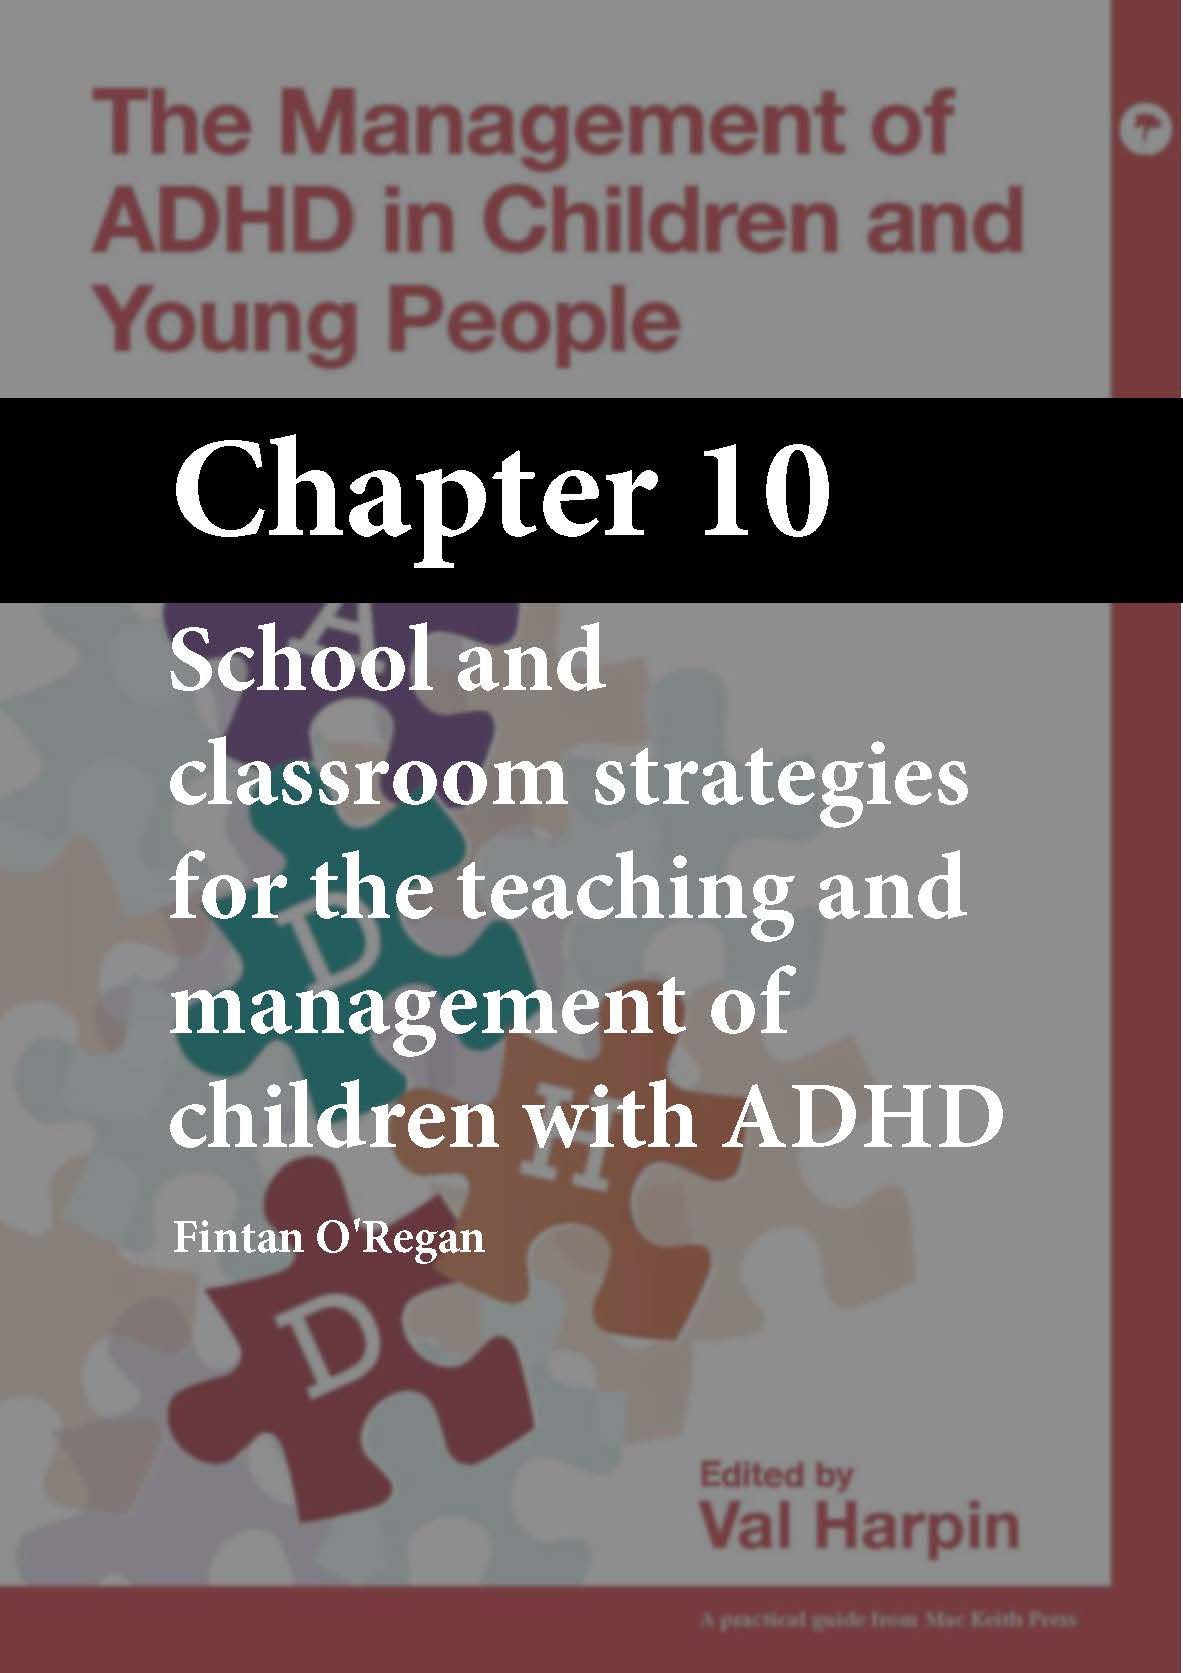 The Management of ADHD in Children and Young People, Harpin, Chapter 10 cover